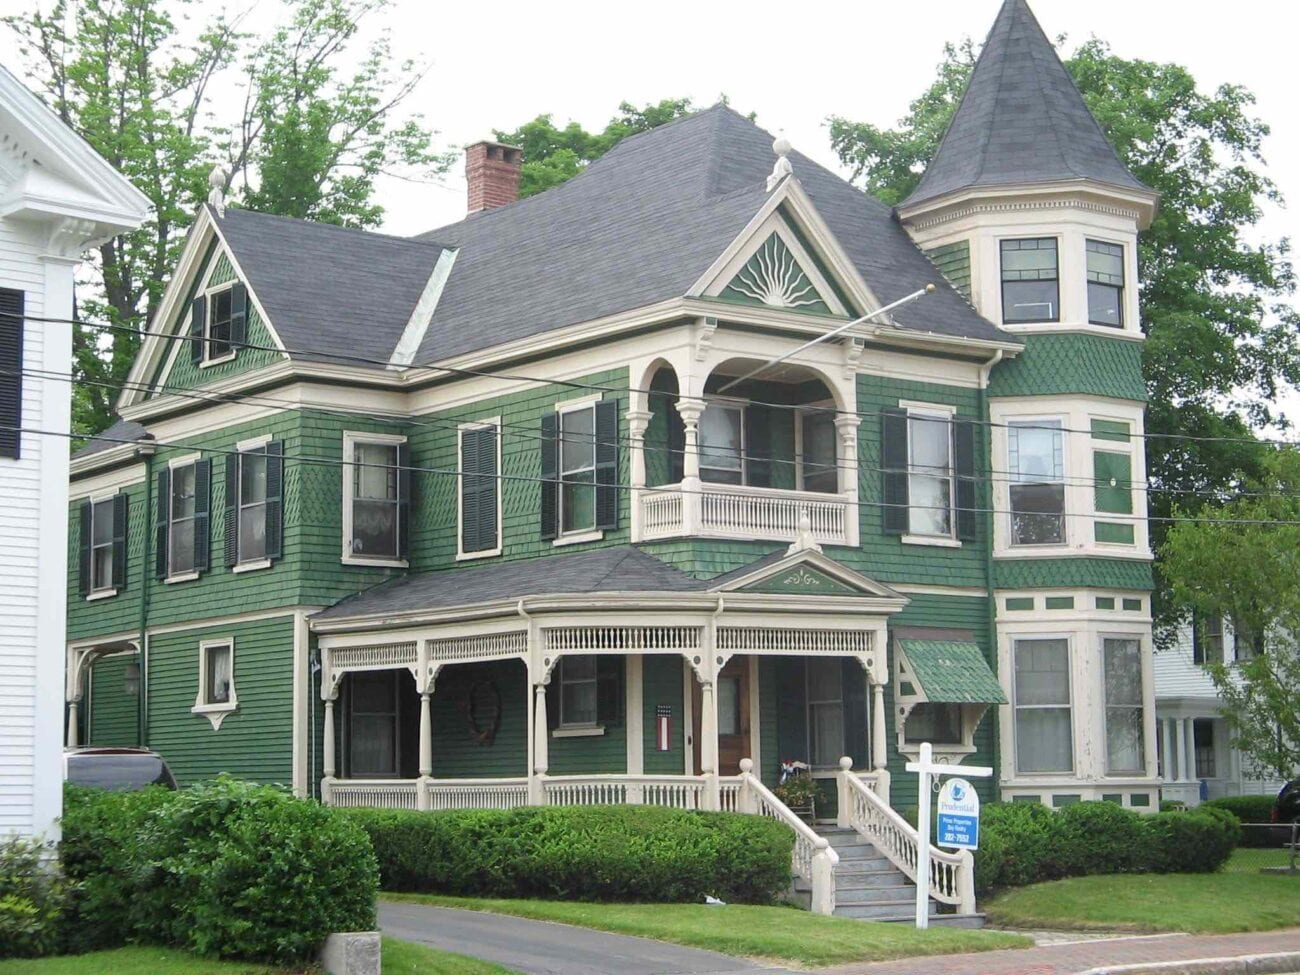 Tired of staring at the same four walls after being stuck in quarantine? Escape into one of these stately, luxurious Victorian houses instead.